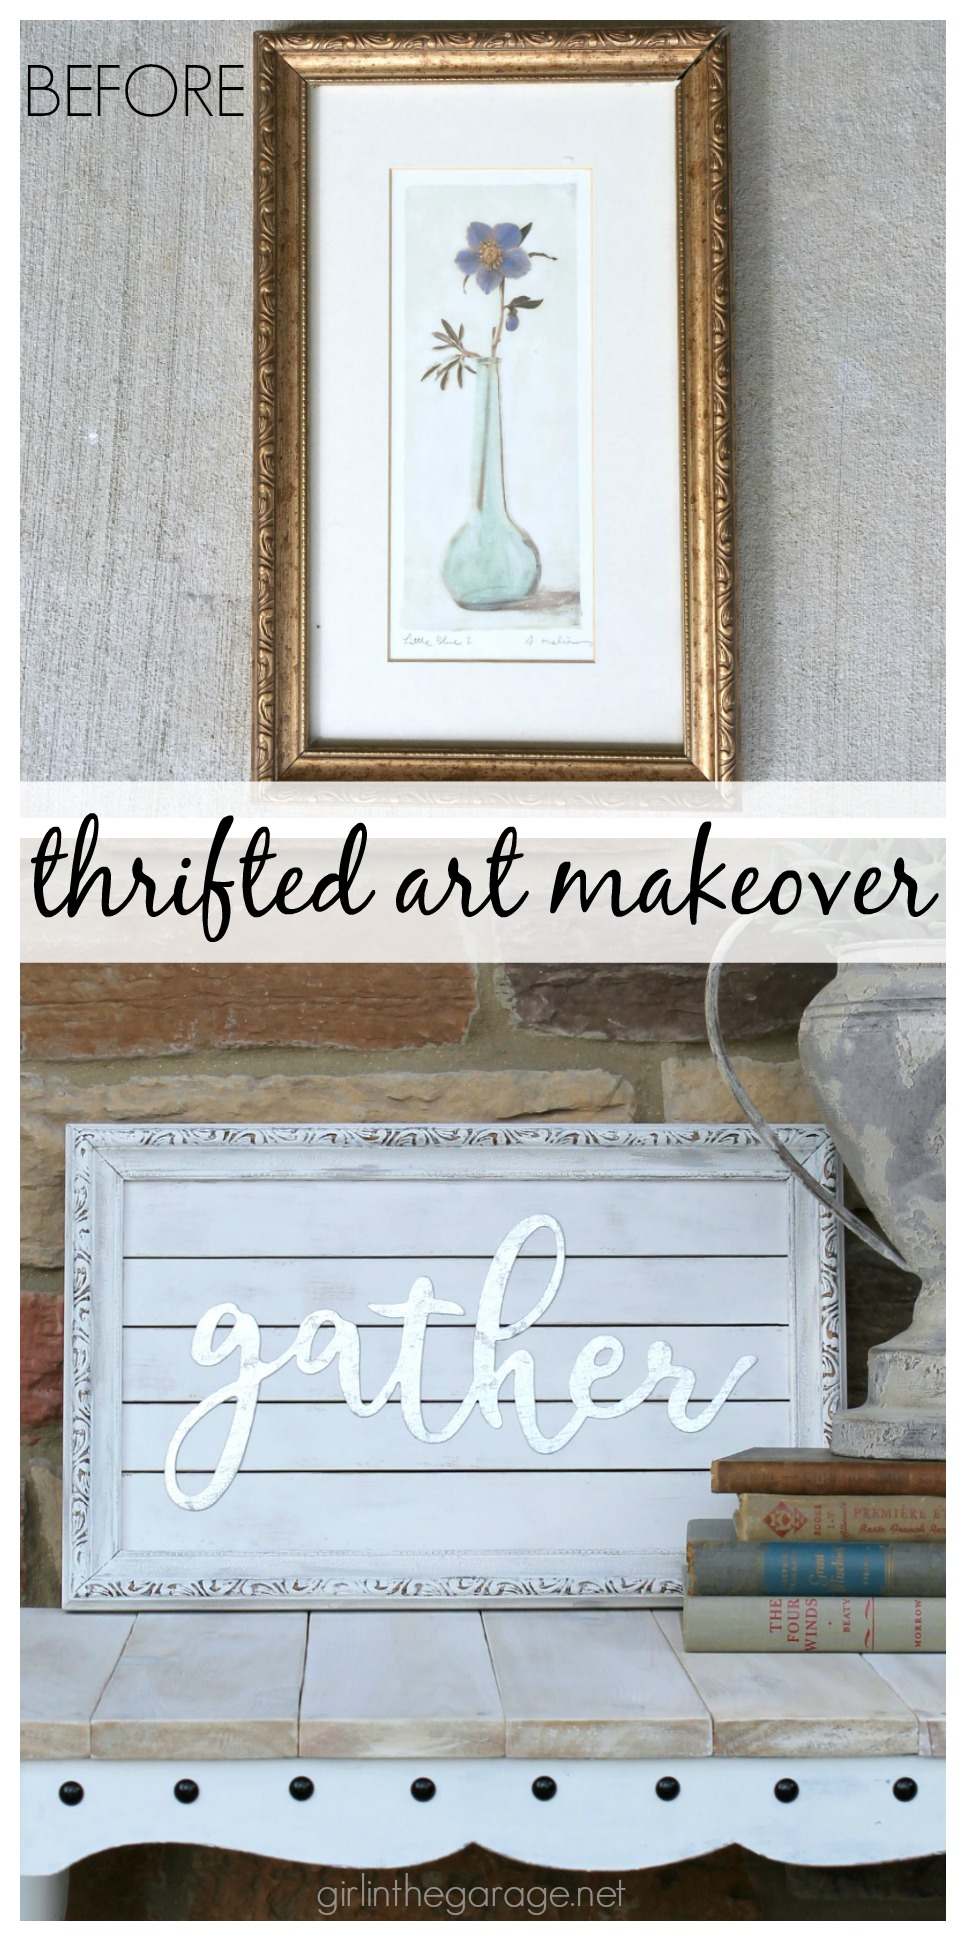 Thrifted art makeover - Girl in the Garage